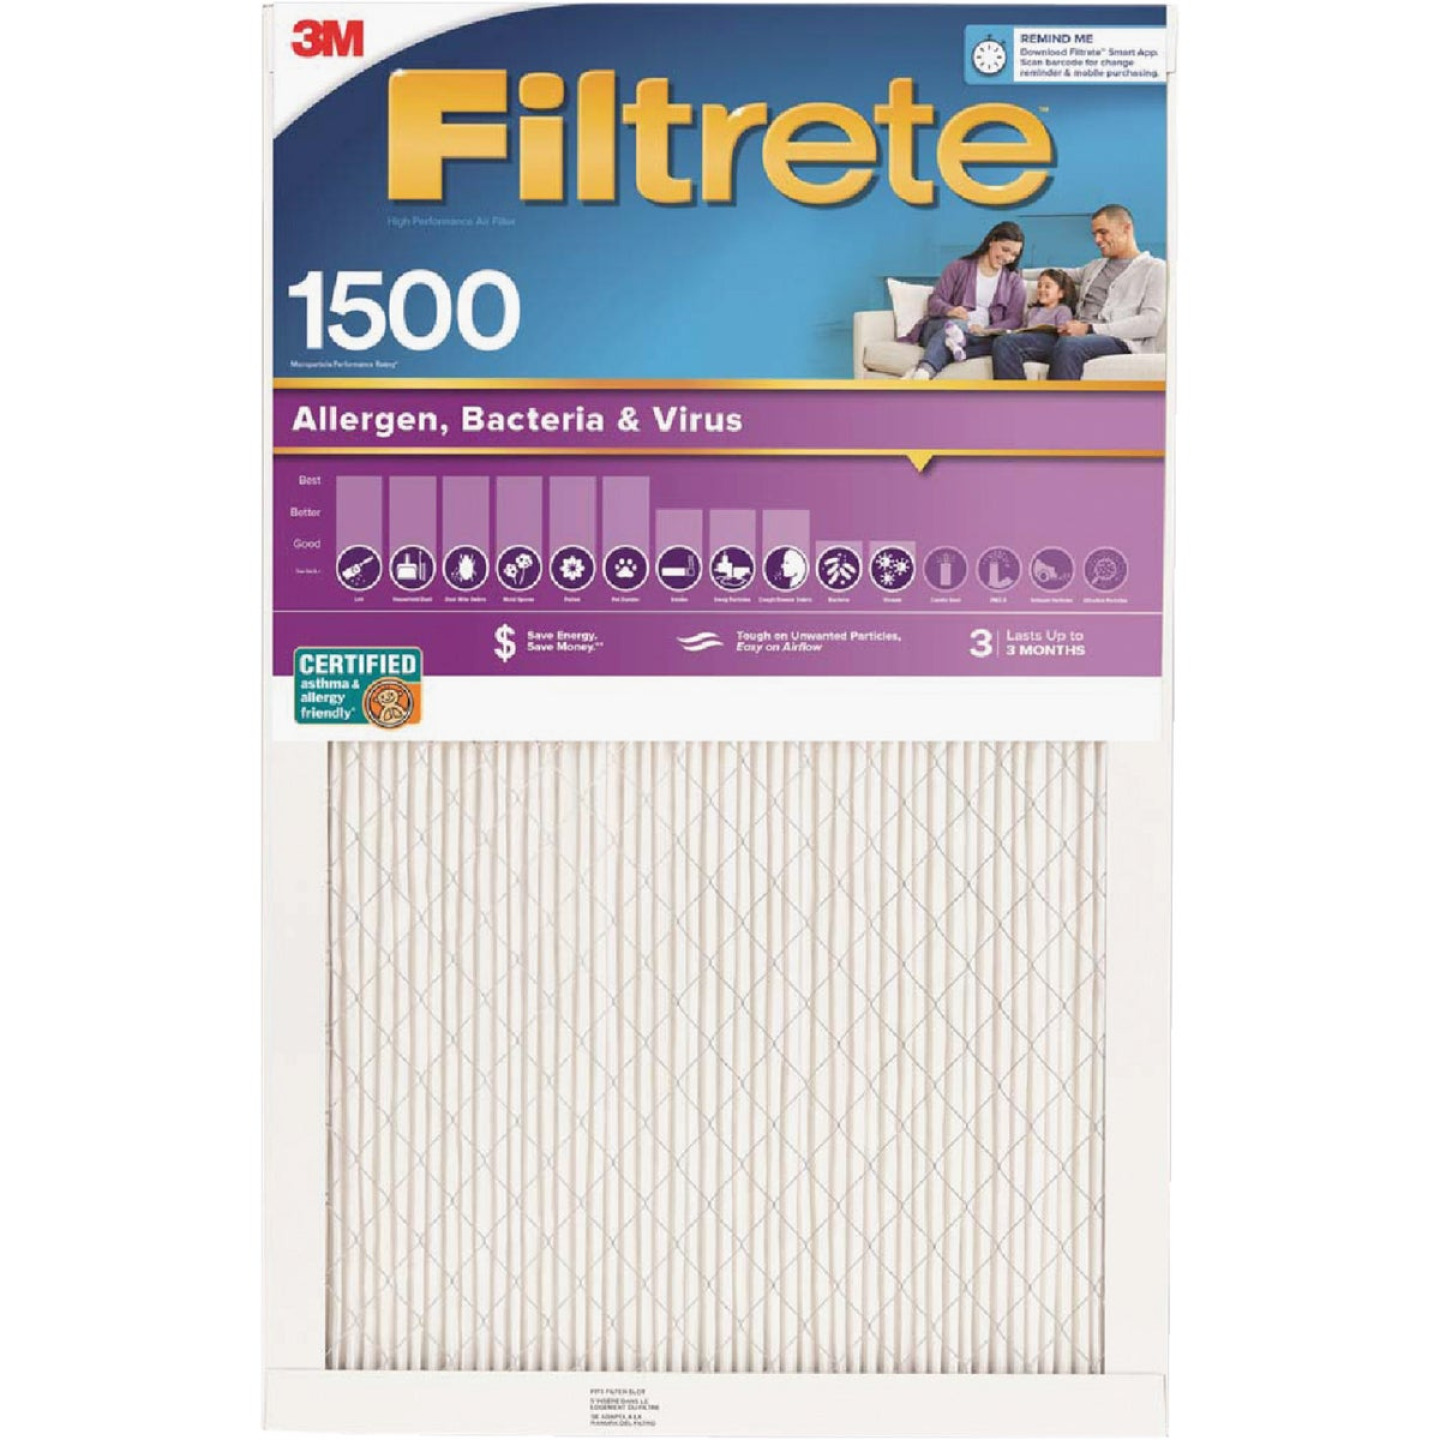 3M Filtrete 12 In. x 36 In. x 1 In. Ultra Allergen Healthy Living 1550 MPR Furnace Filter Image 1